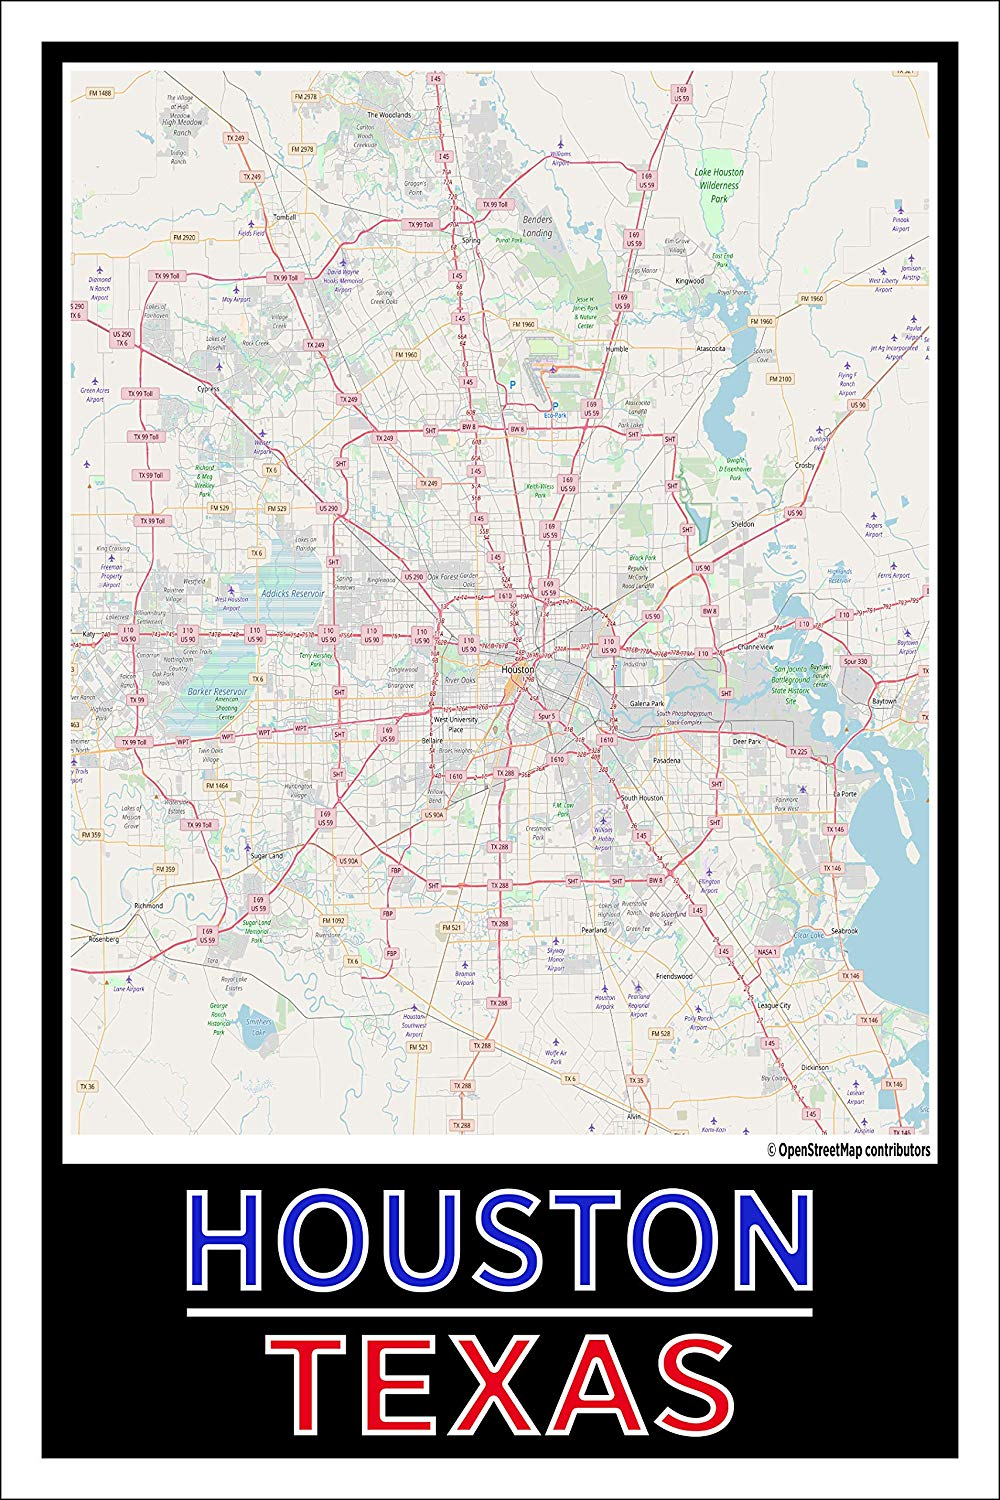 "Spitzy's Houston Texas Colored Map Poster - Home Wall Art for Your Bedroom or Home Office - Map of Houston, City Map Poster (12"" x 18"" Dimensions Include a White .5"" Border)"